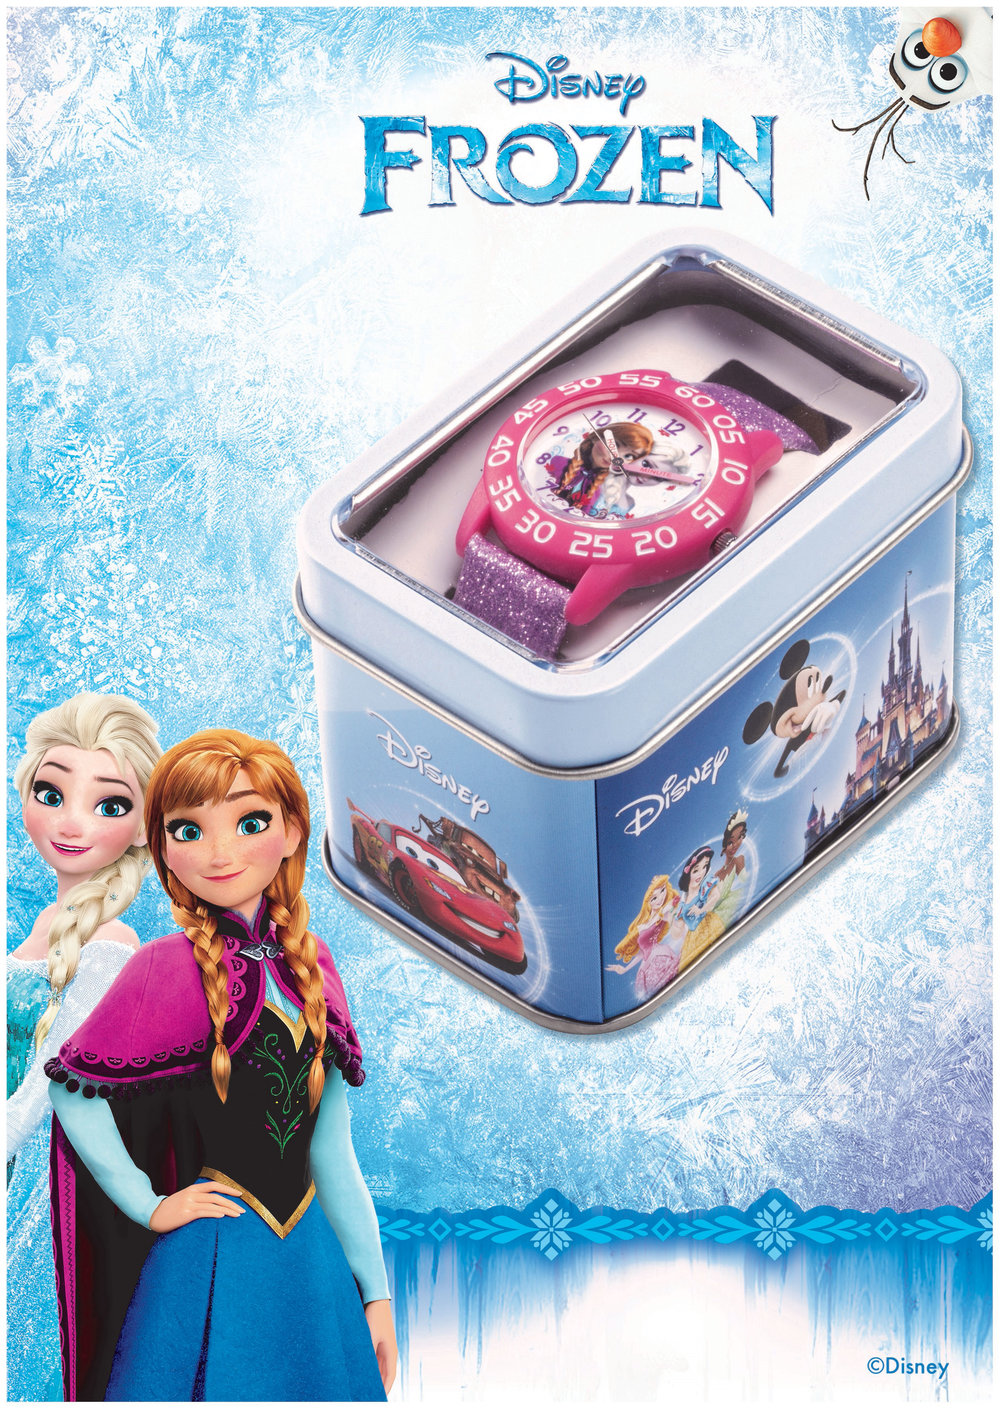 frozen-advert1_scorpio-worldwide_travel-retail-distributor